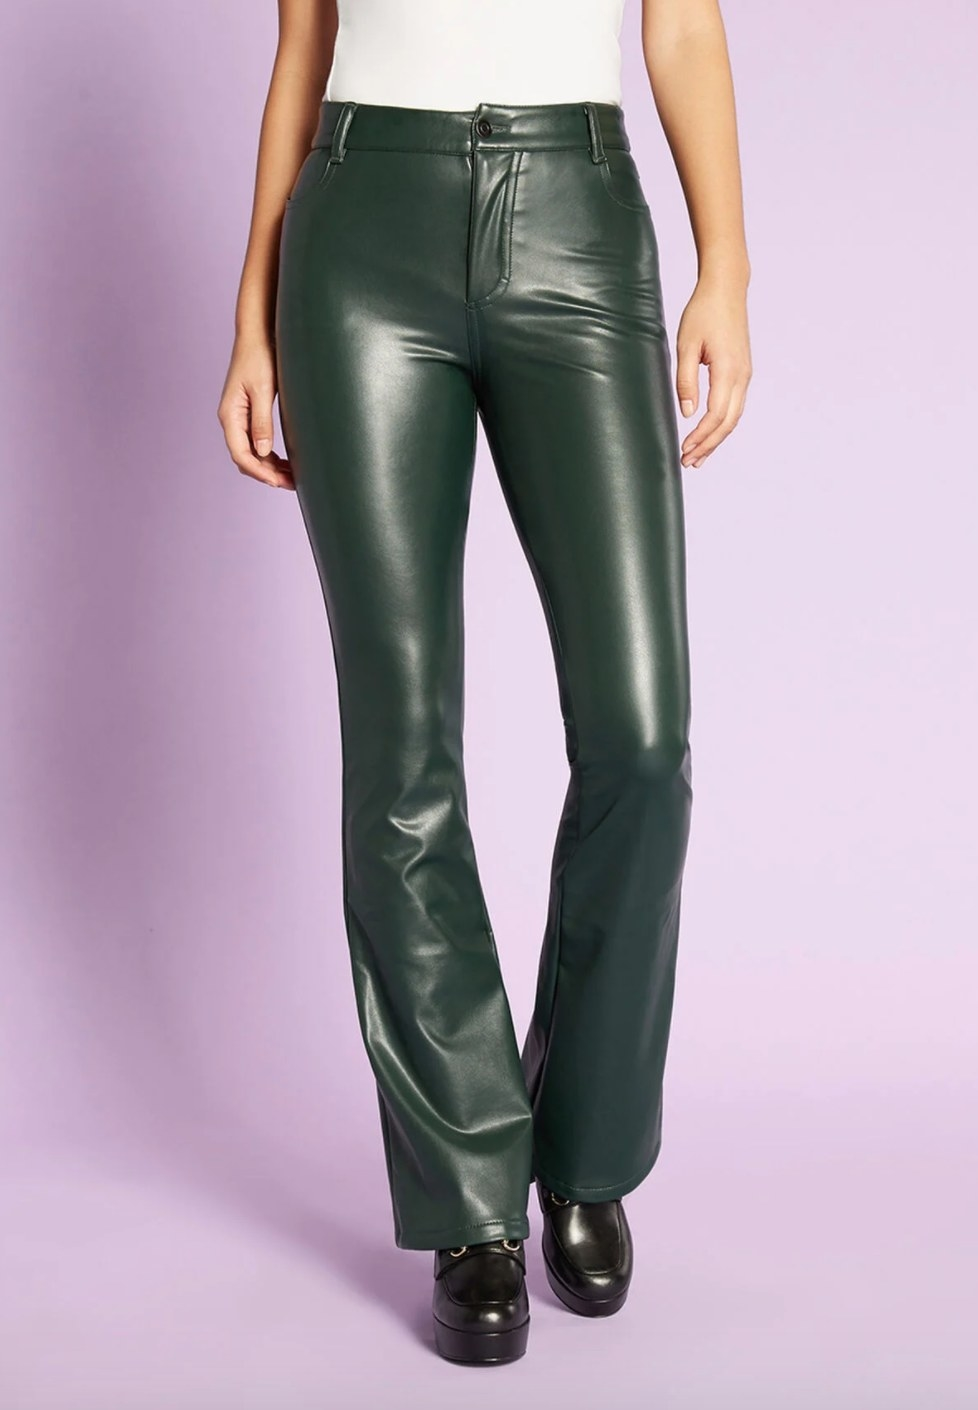 The evergreen gleam and flare pants